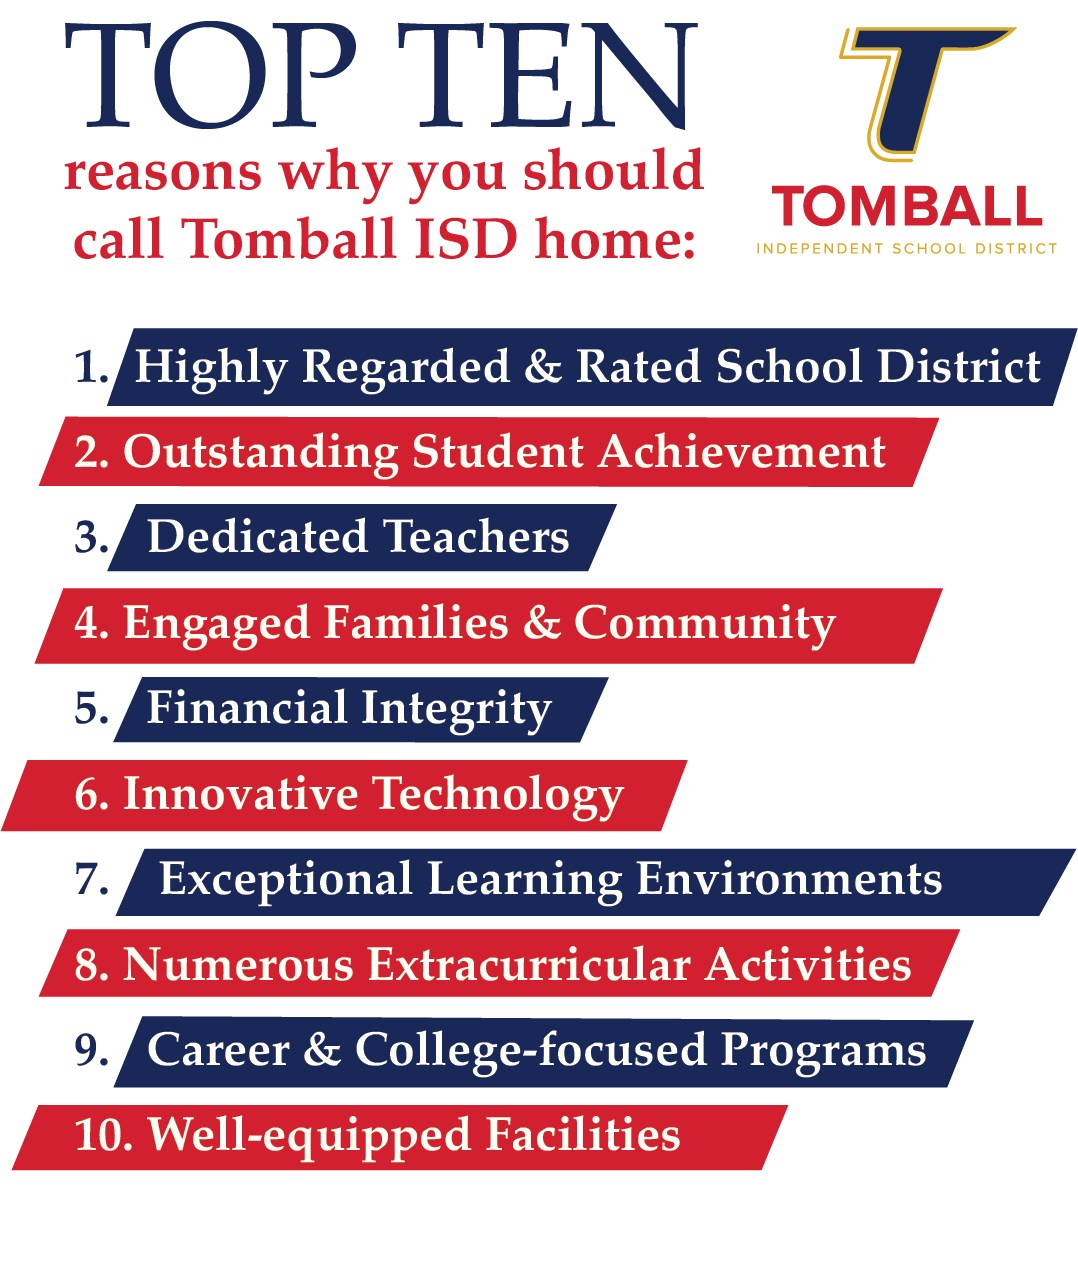 Top Ten reasons to call TISD home